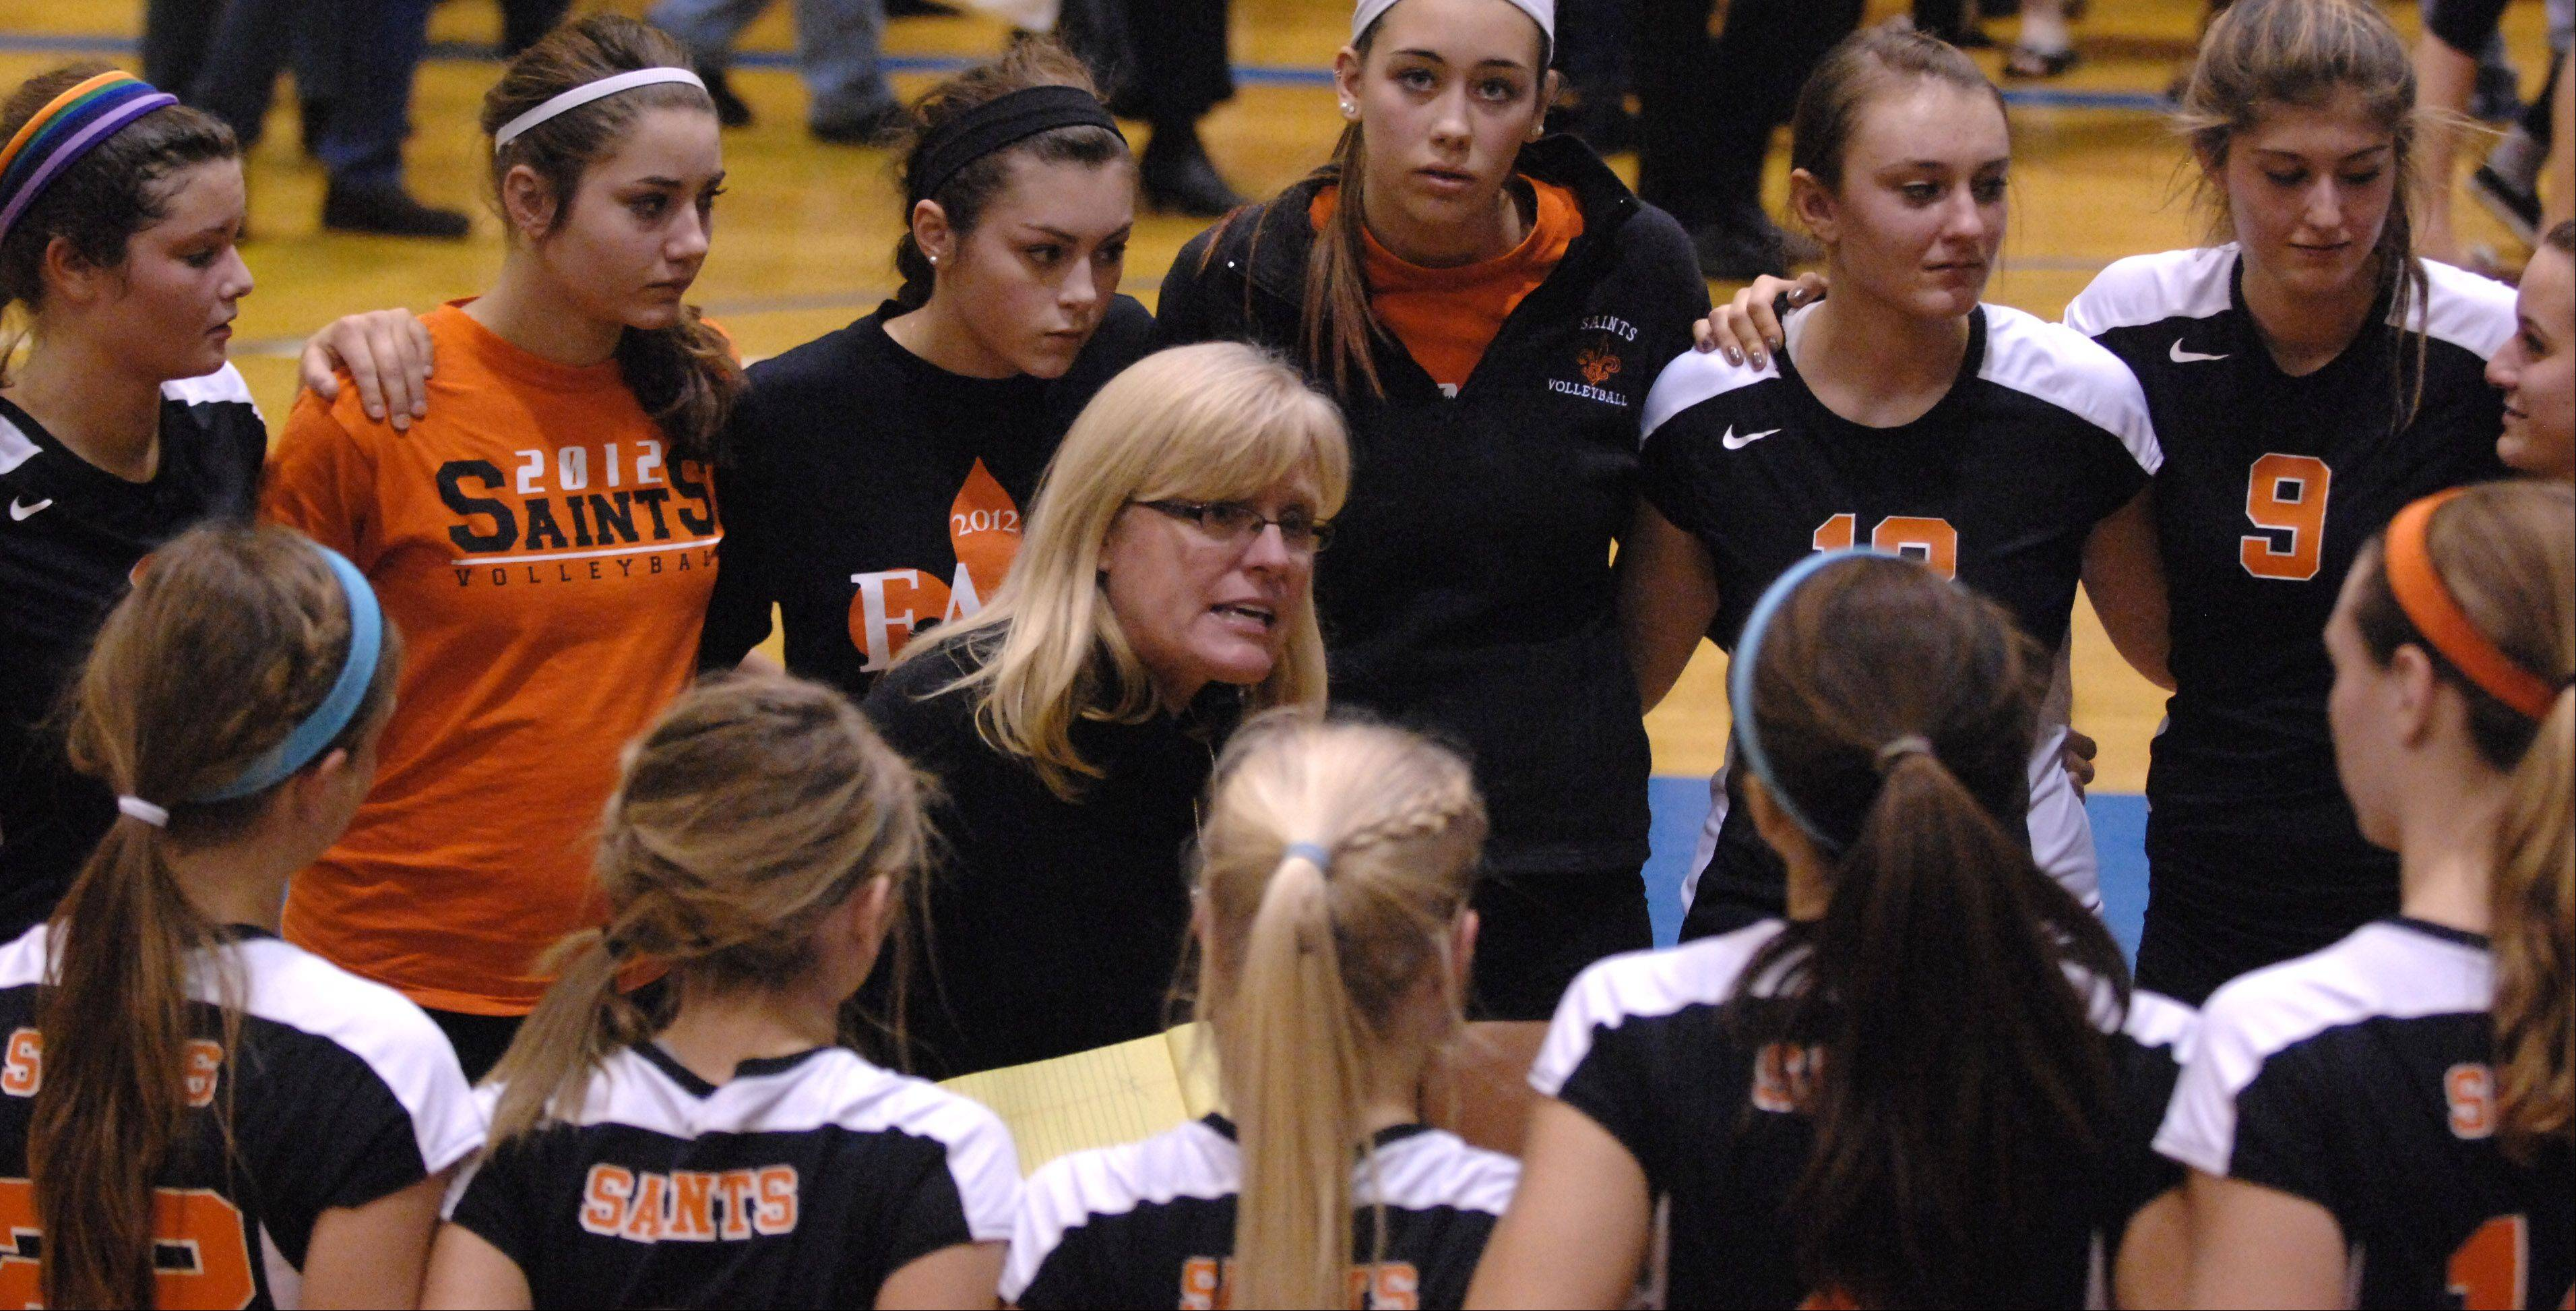 St. Charles East coach Jennie Kull congratulates her team on their season following their loss to Geneva during Tuesday's sectional semifinals at Larkin High School in Elgin.